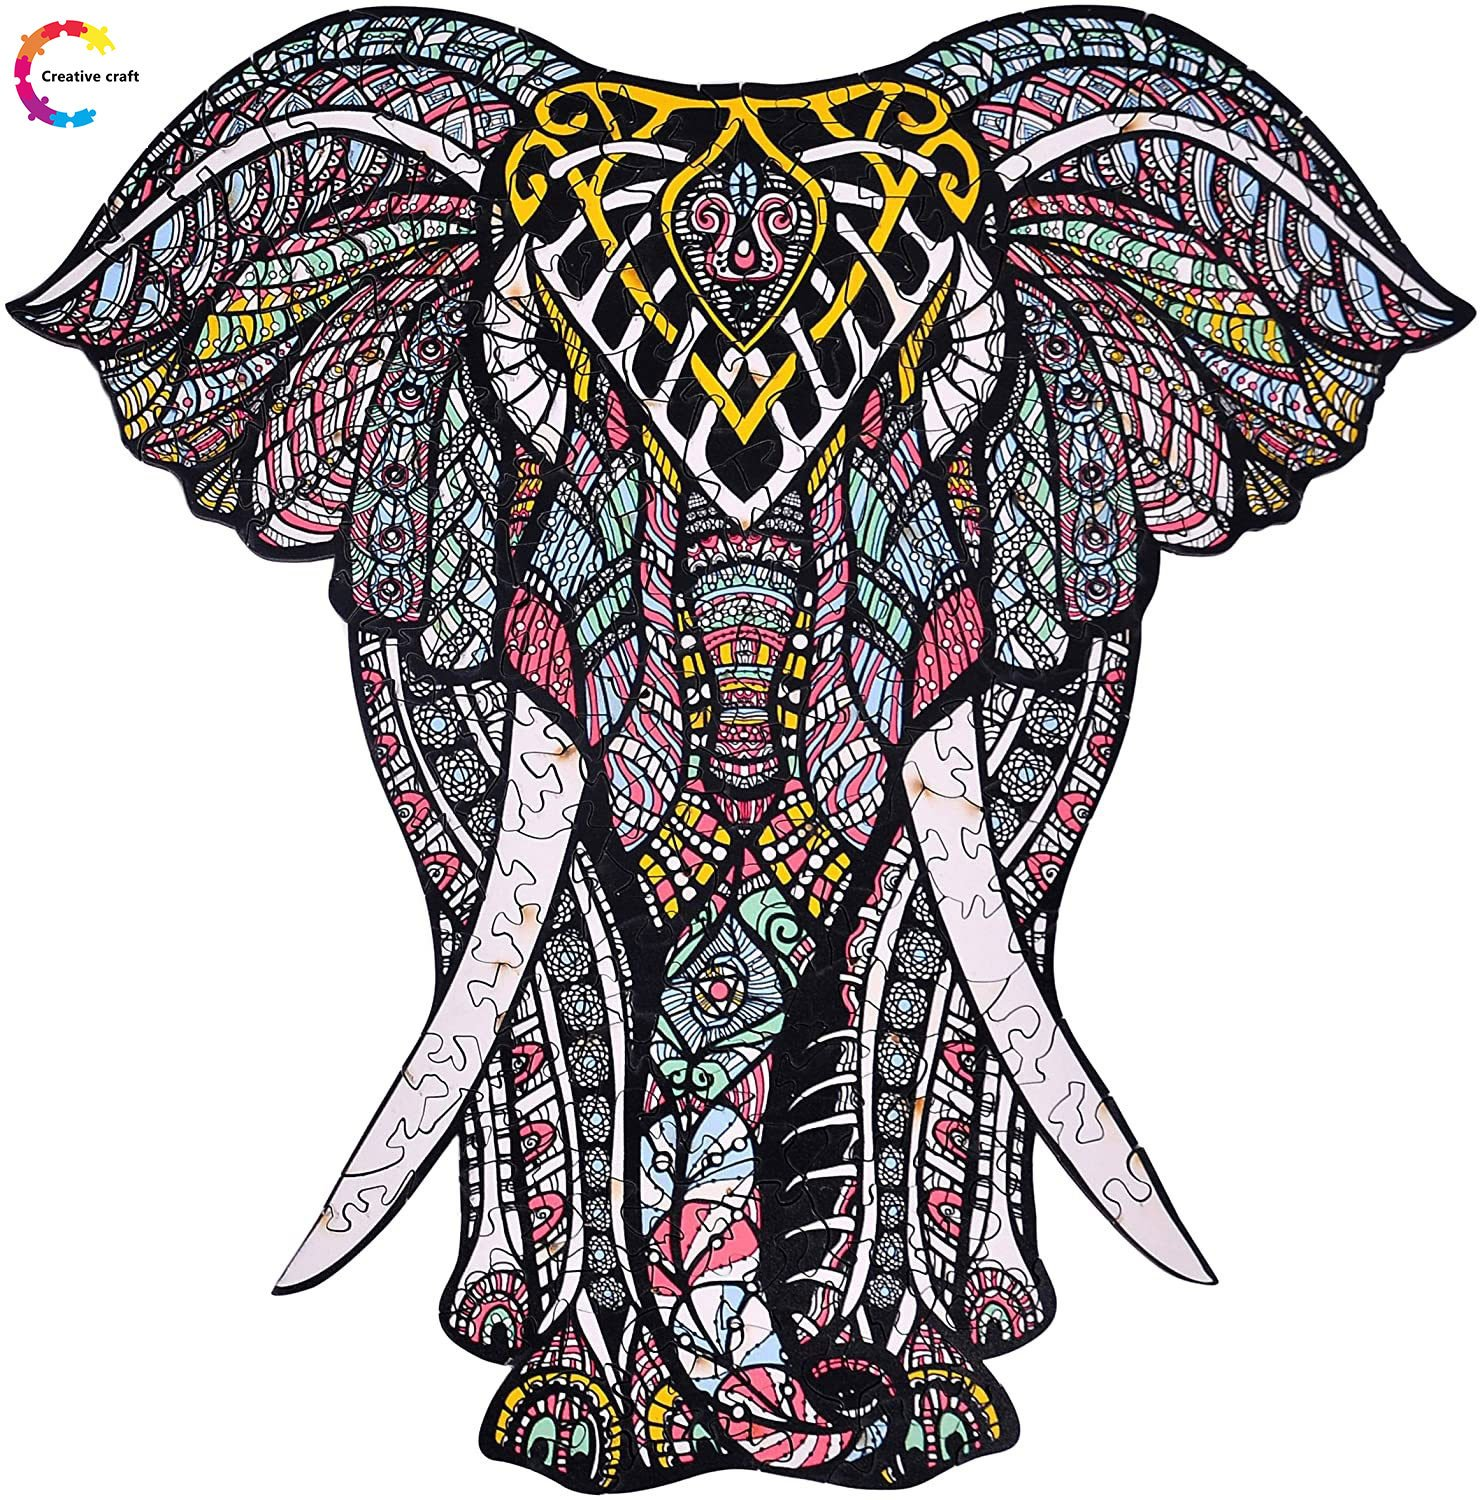 Wooden Jigsaw Puzzle Elephant-50% OFF